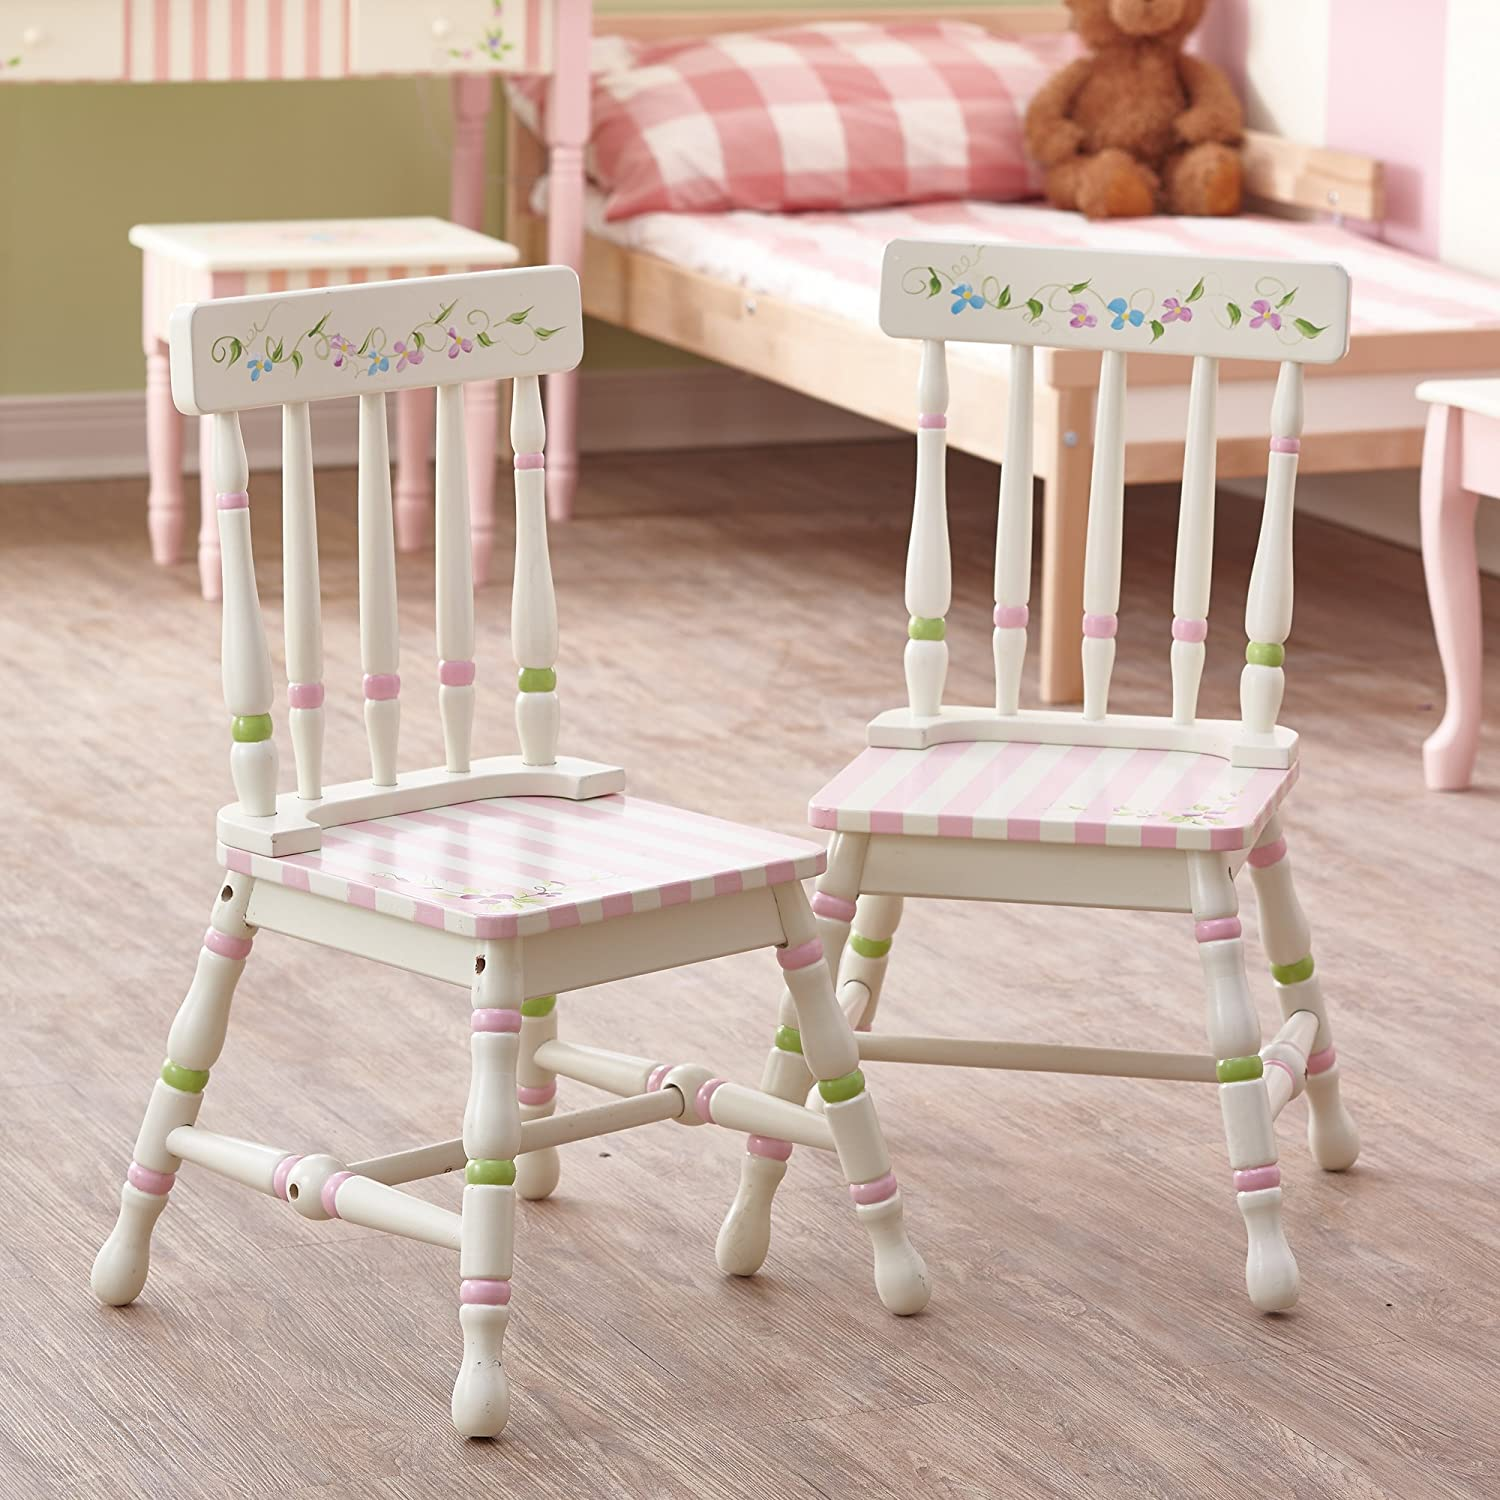 Fantasy Fields - Enchanted Woodland themed Kids Wooden 2 Chairs Set (Table Sold Seperately)| Hand Crafted & Hand Painted Details | Child Friendly Water-based Paint Teamson TD-11740A